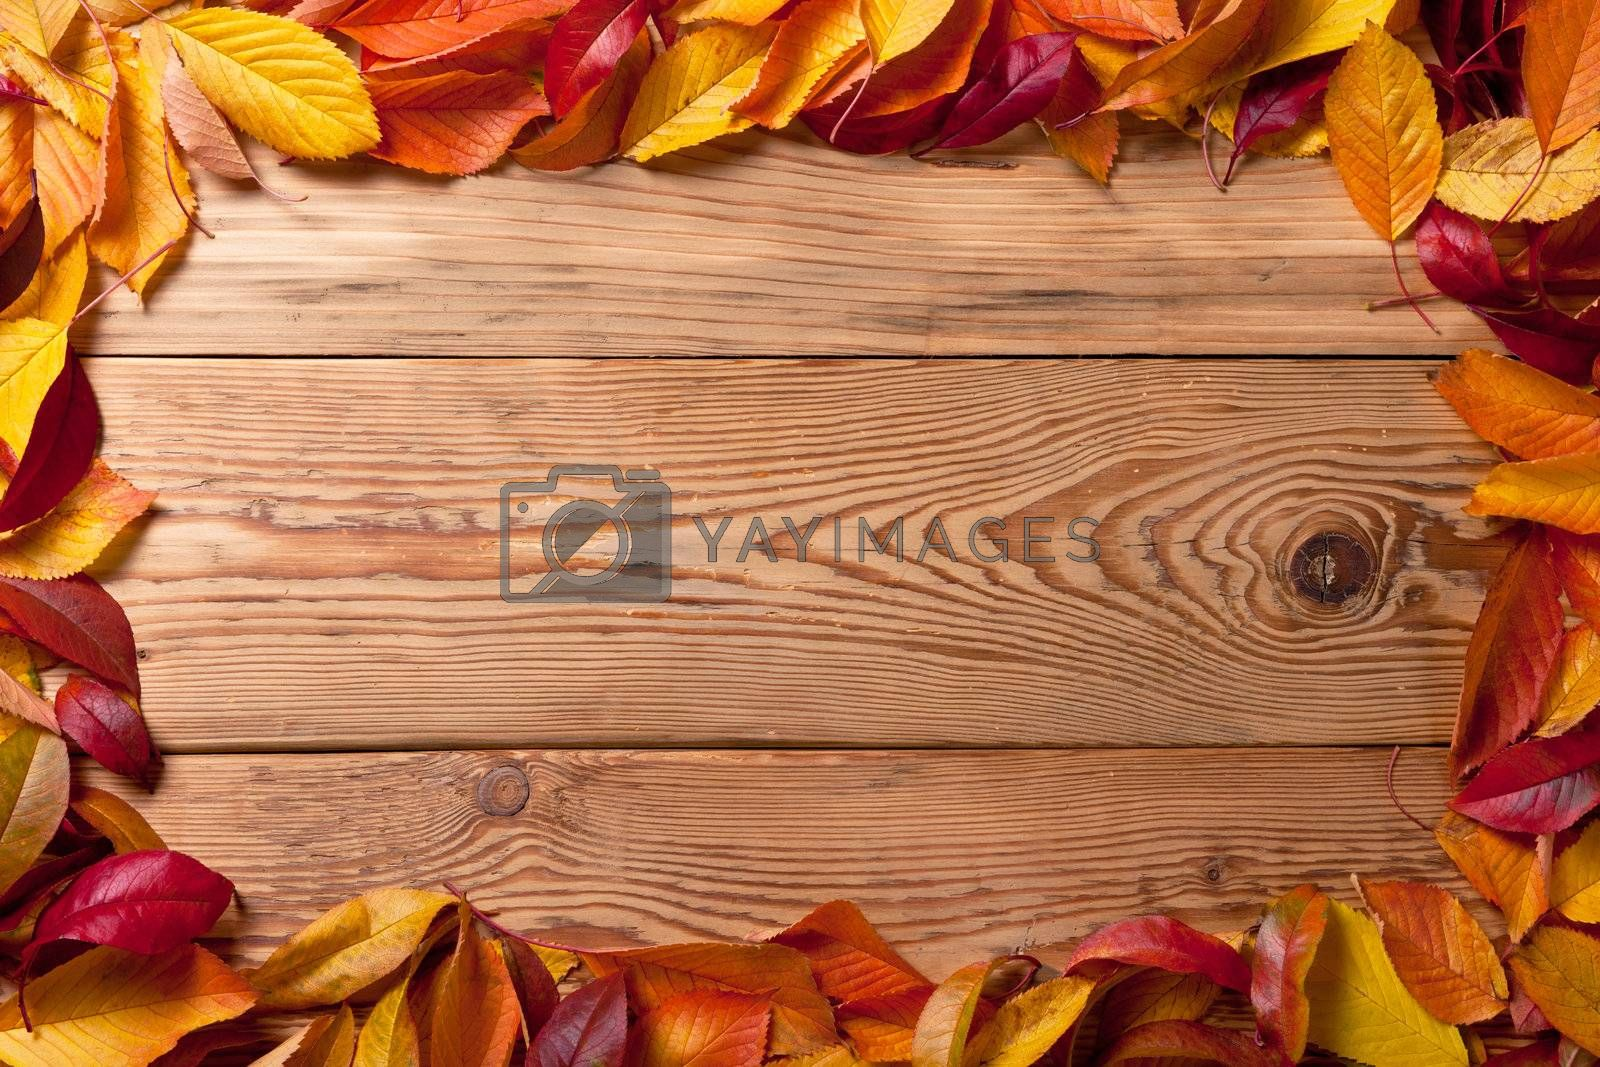 Autumn leaves from fruit trees on wooden background with copy space. Top view